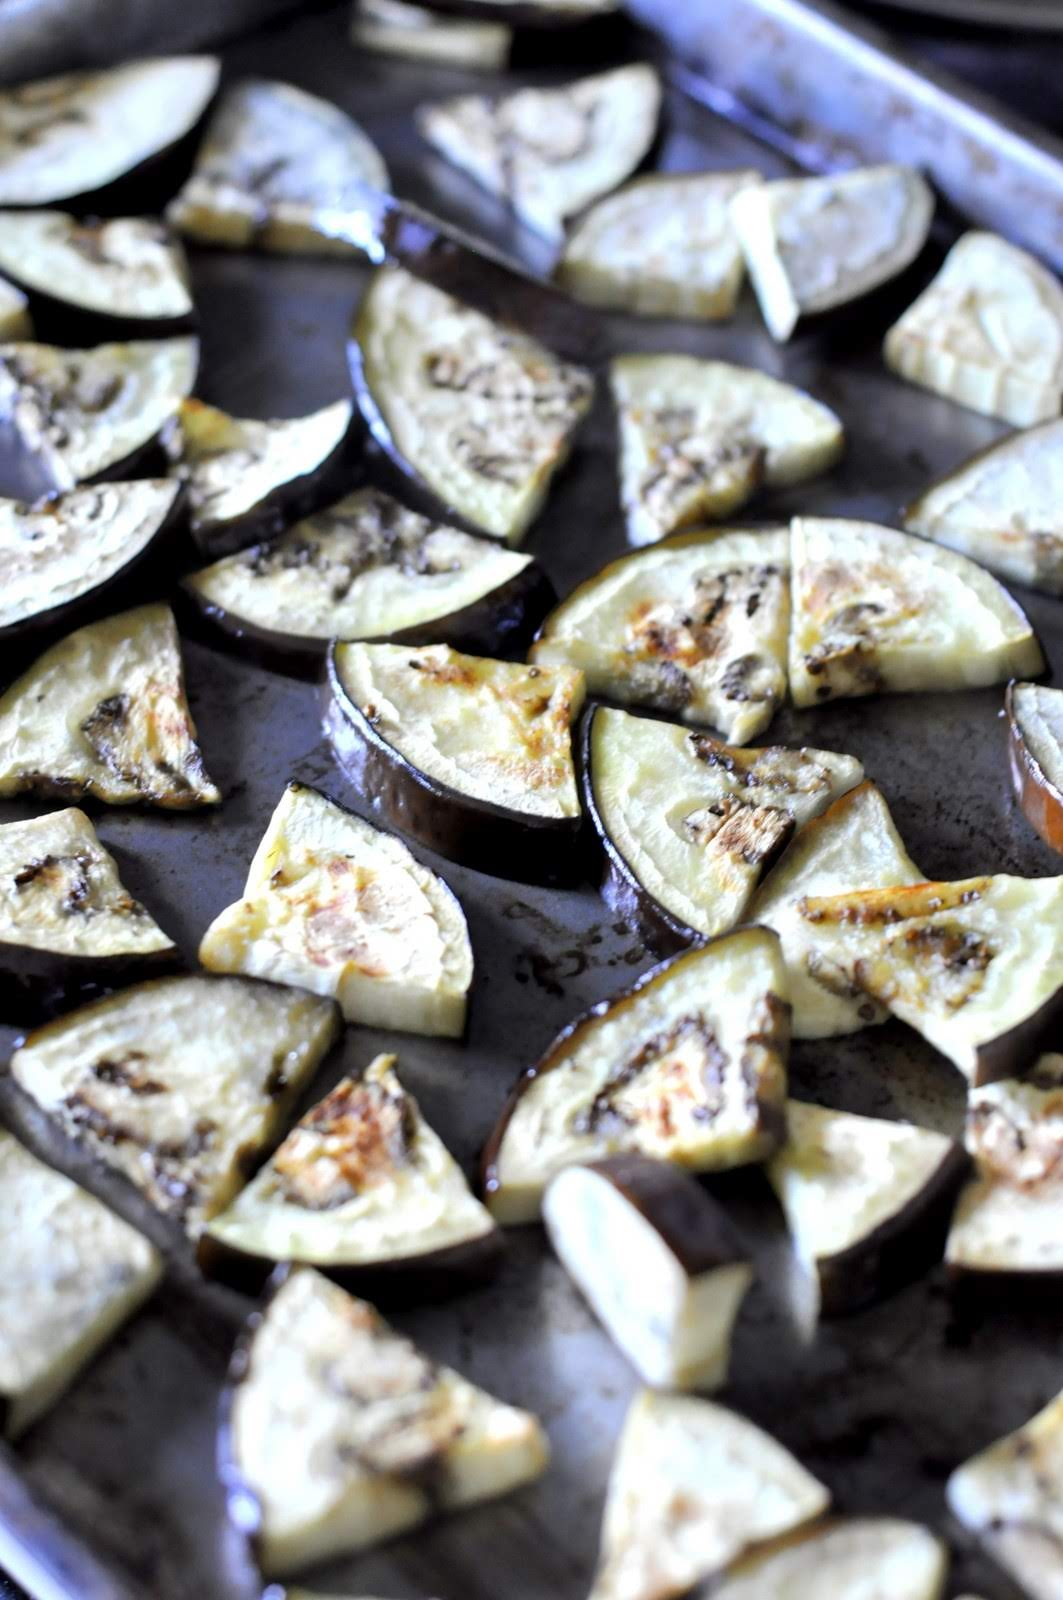 Cutting the eggplant slices into wedges will help create nicely browned edges when broiling or roasting.